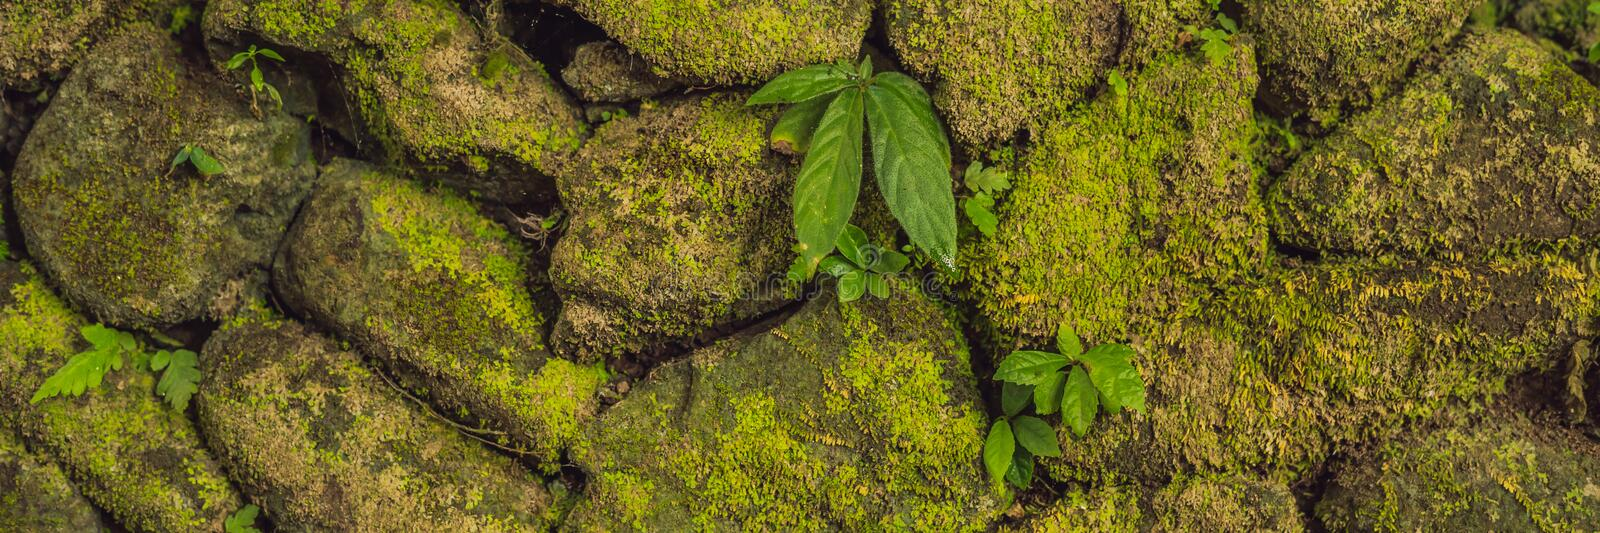 Texture of old stone wall covered green moss in Fort Rotterdam, Makassar - Indonesia BANNER, long format. Texture of old stone wall covered green moss in Fort stock photography